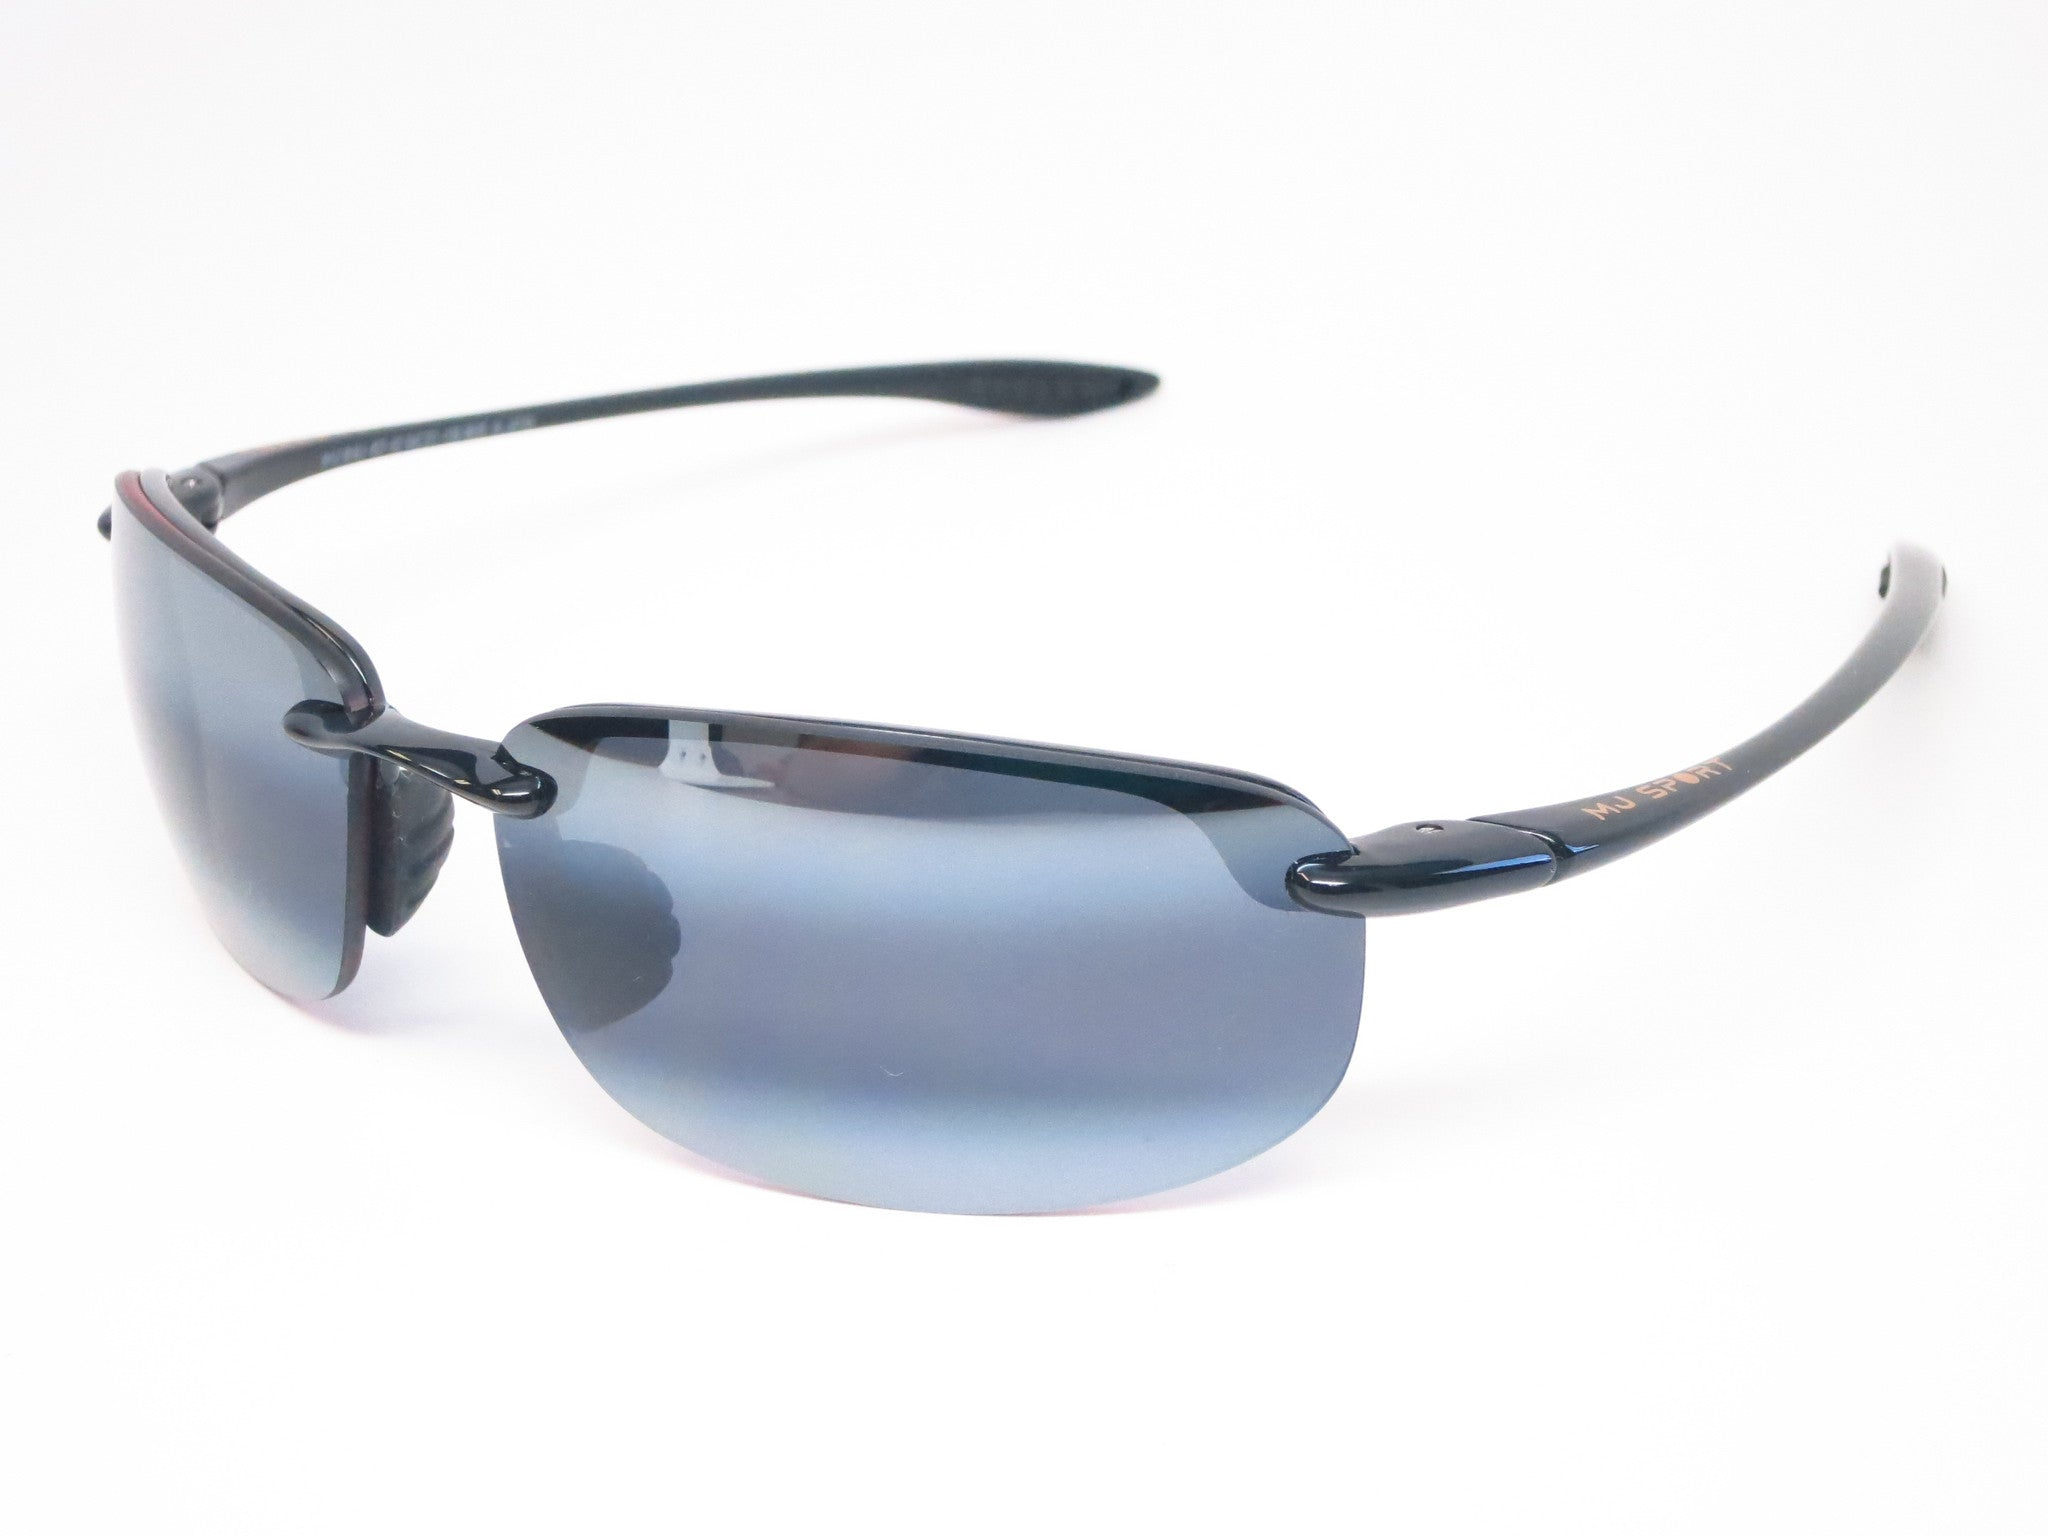 af35fca1377 Maui Jim Hookipa 407-02 Gloss Black Polarized Sunglasses - Eye Heart Shades  - Maui ...